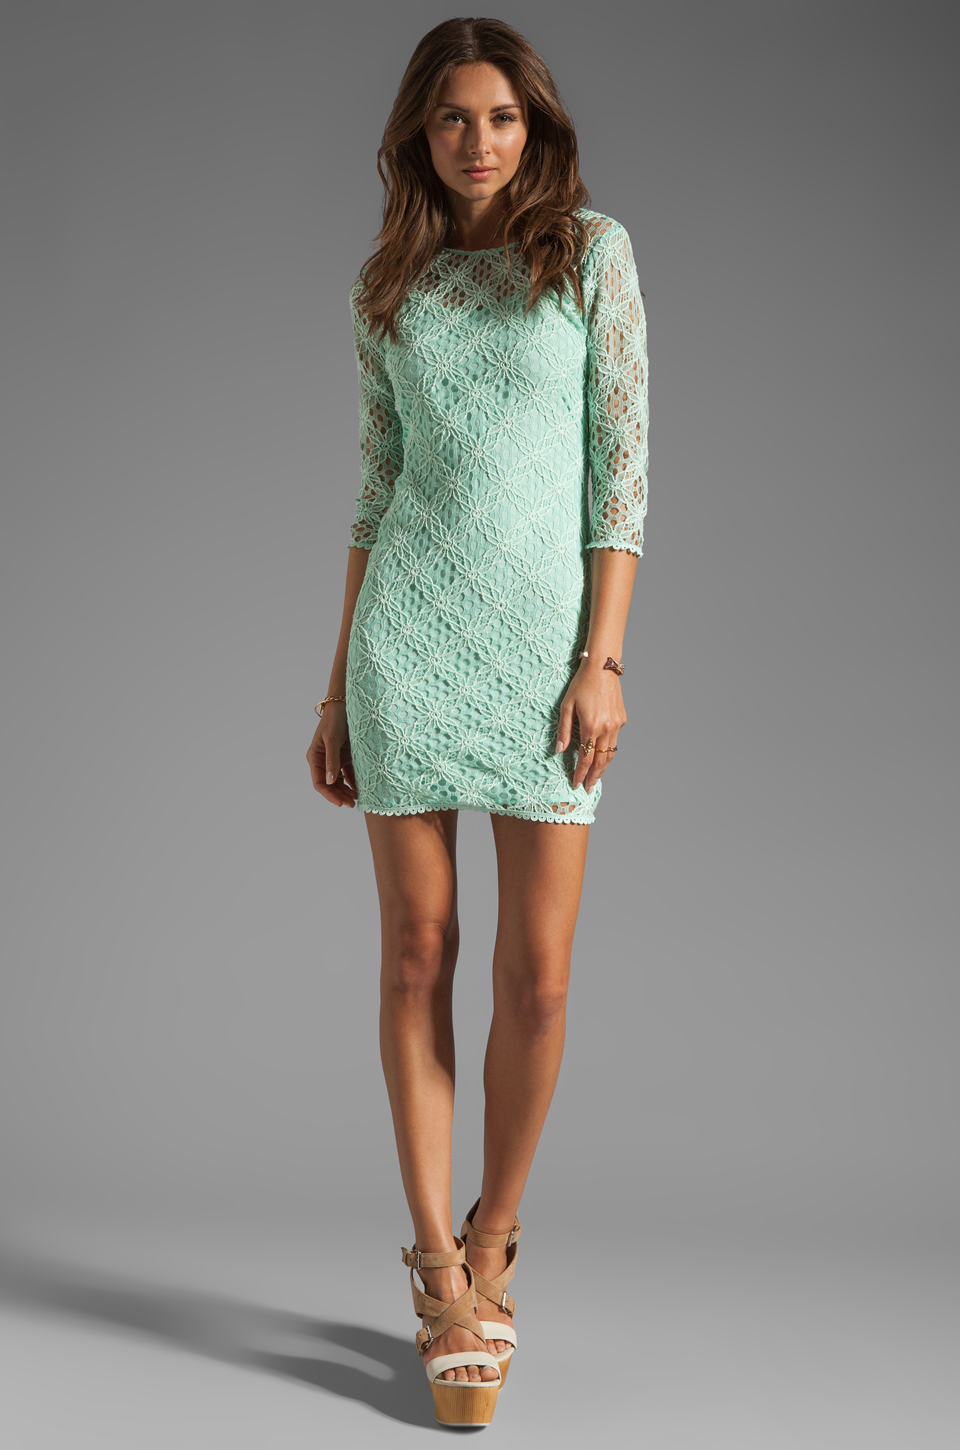 Dolce Vita Cat Crochet Lace Long Sleeve Dress in Mint